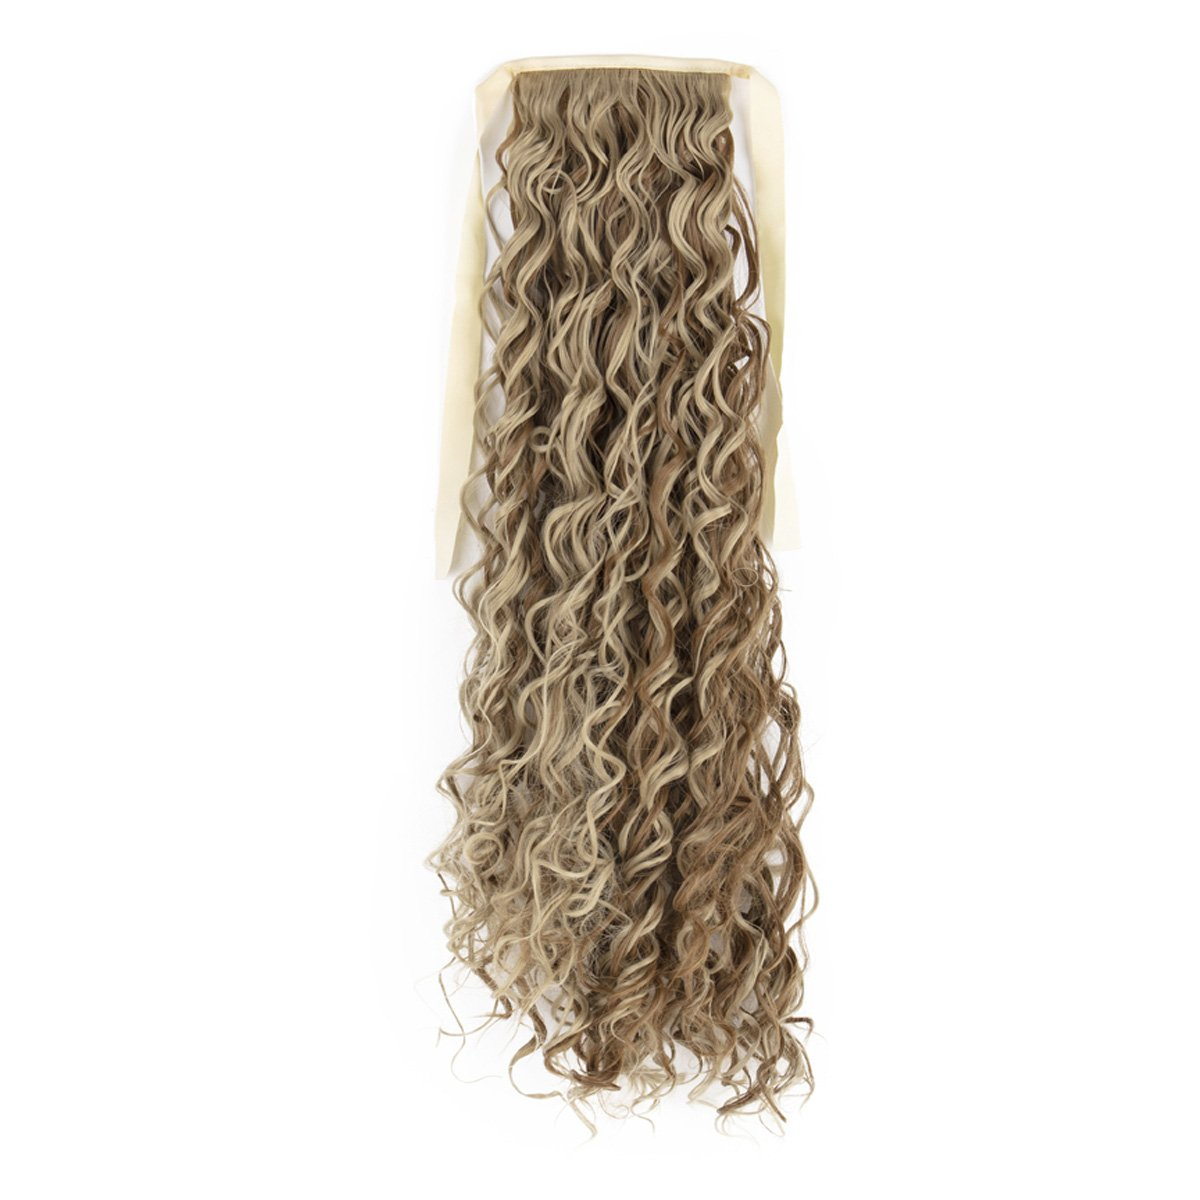 Drawstring Ponytail Extensions Tie Up Ponytail Clip in Hair Extensions Hairpiece Binding Pony Tail Extension for Girl Lady Woman Haironline